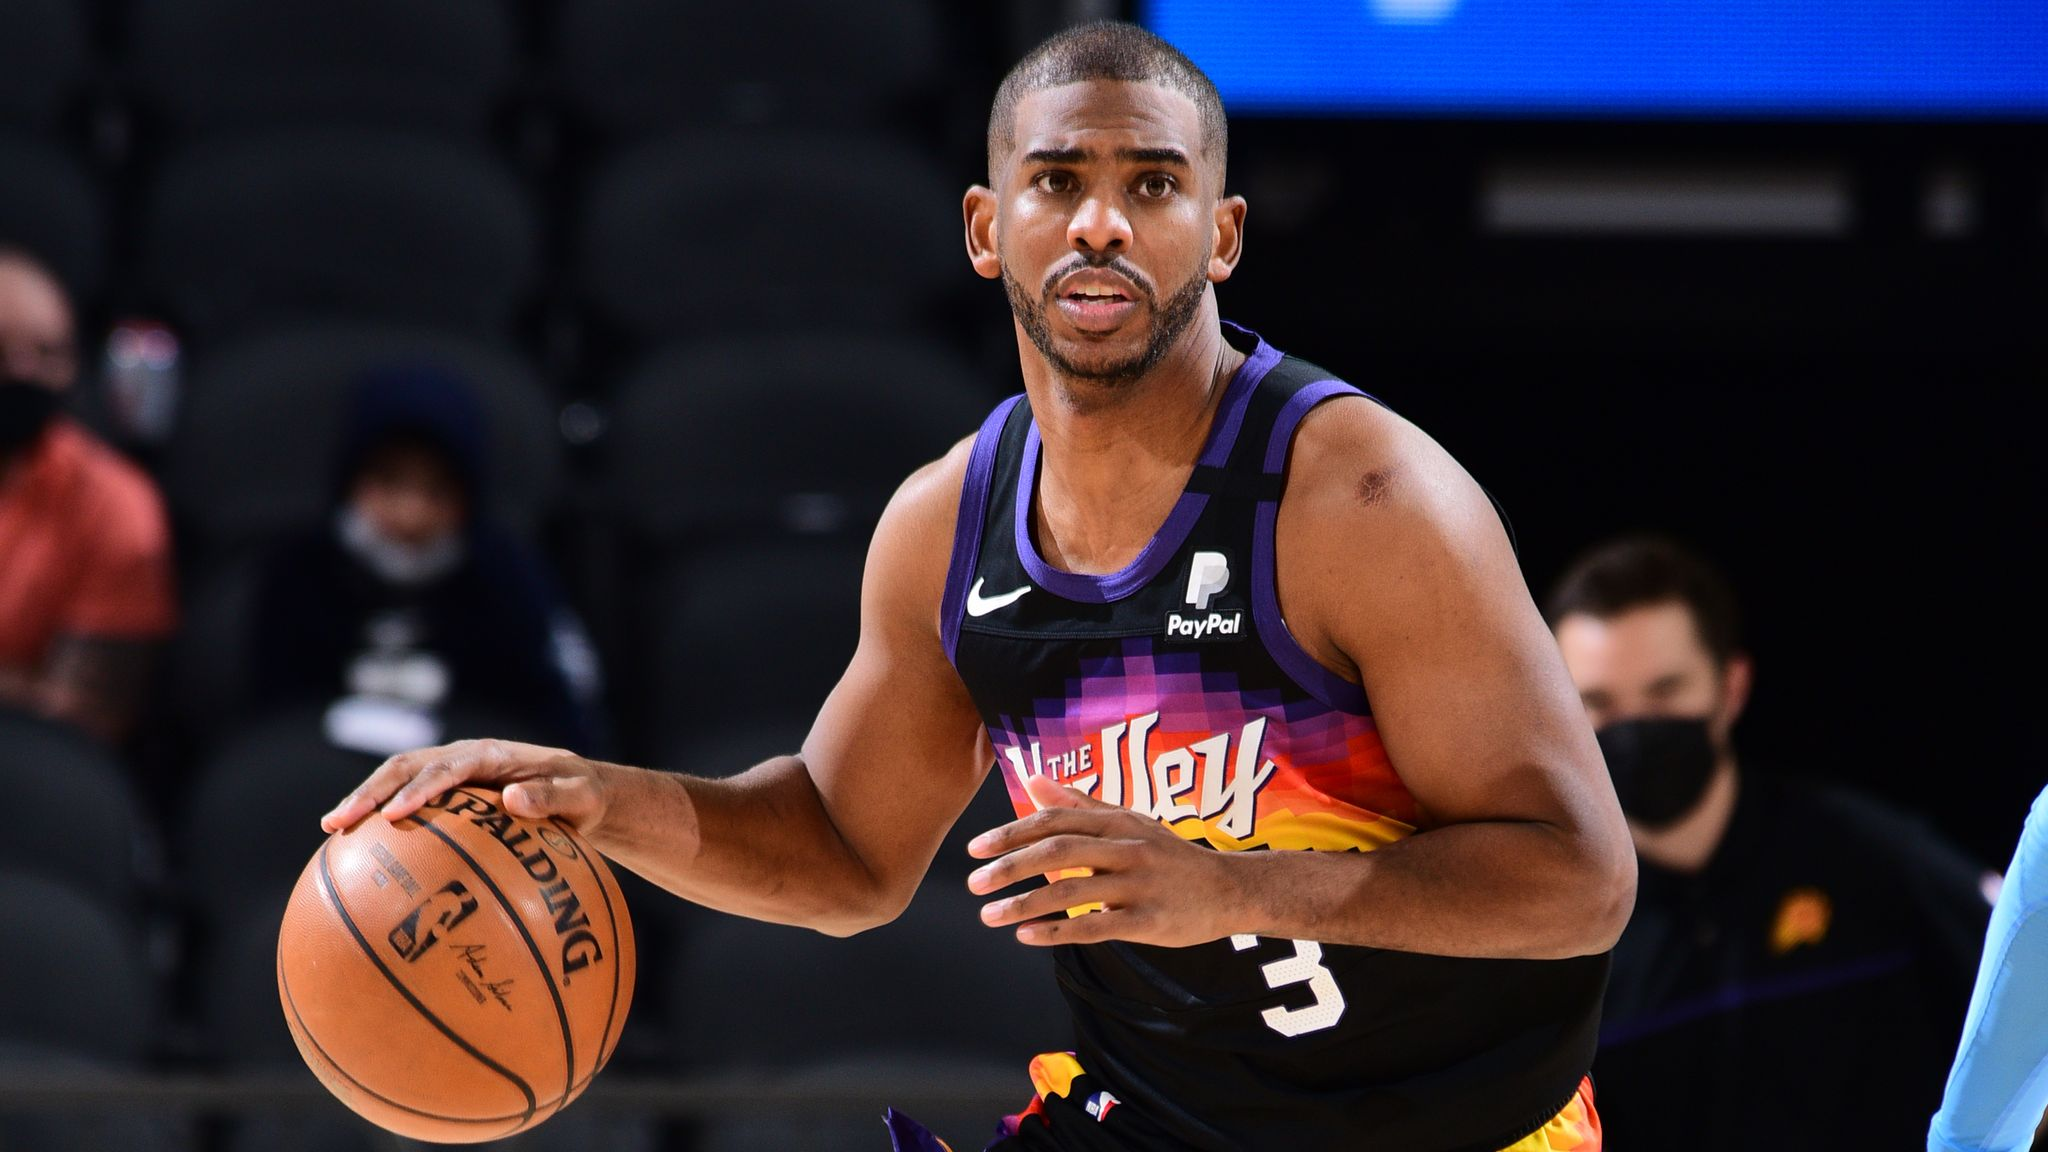 Chris Paul: 10,000 assists and counting   NBA News   Sky Sports